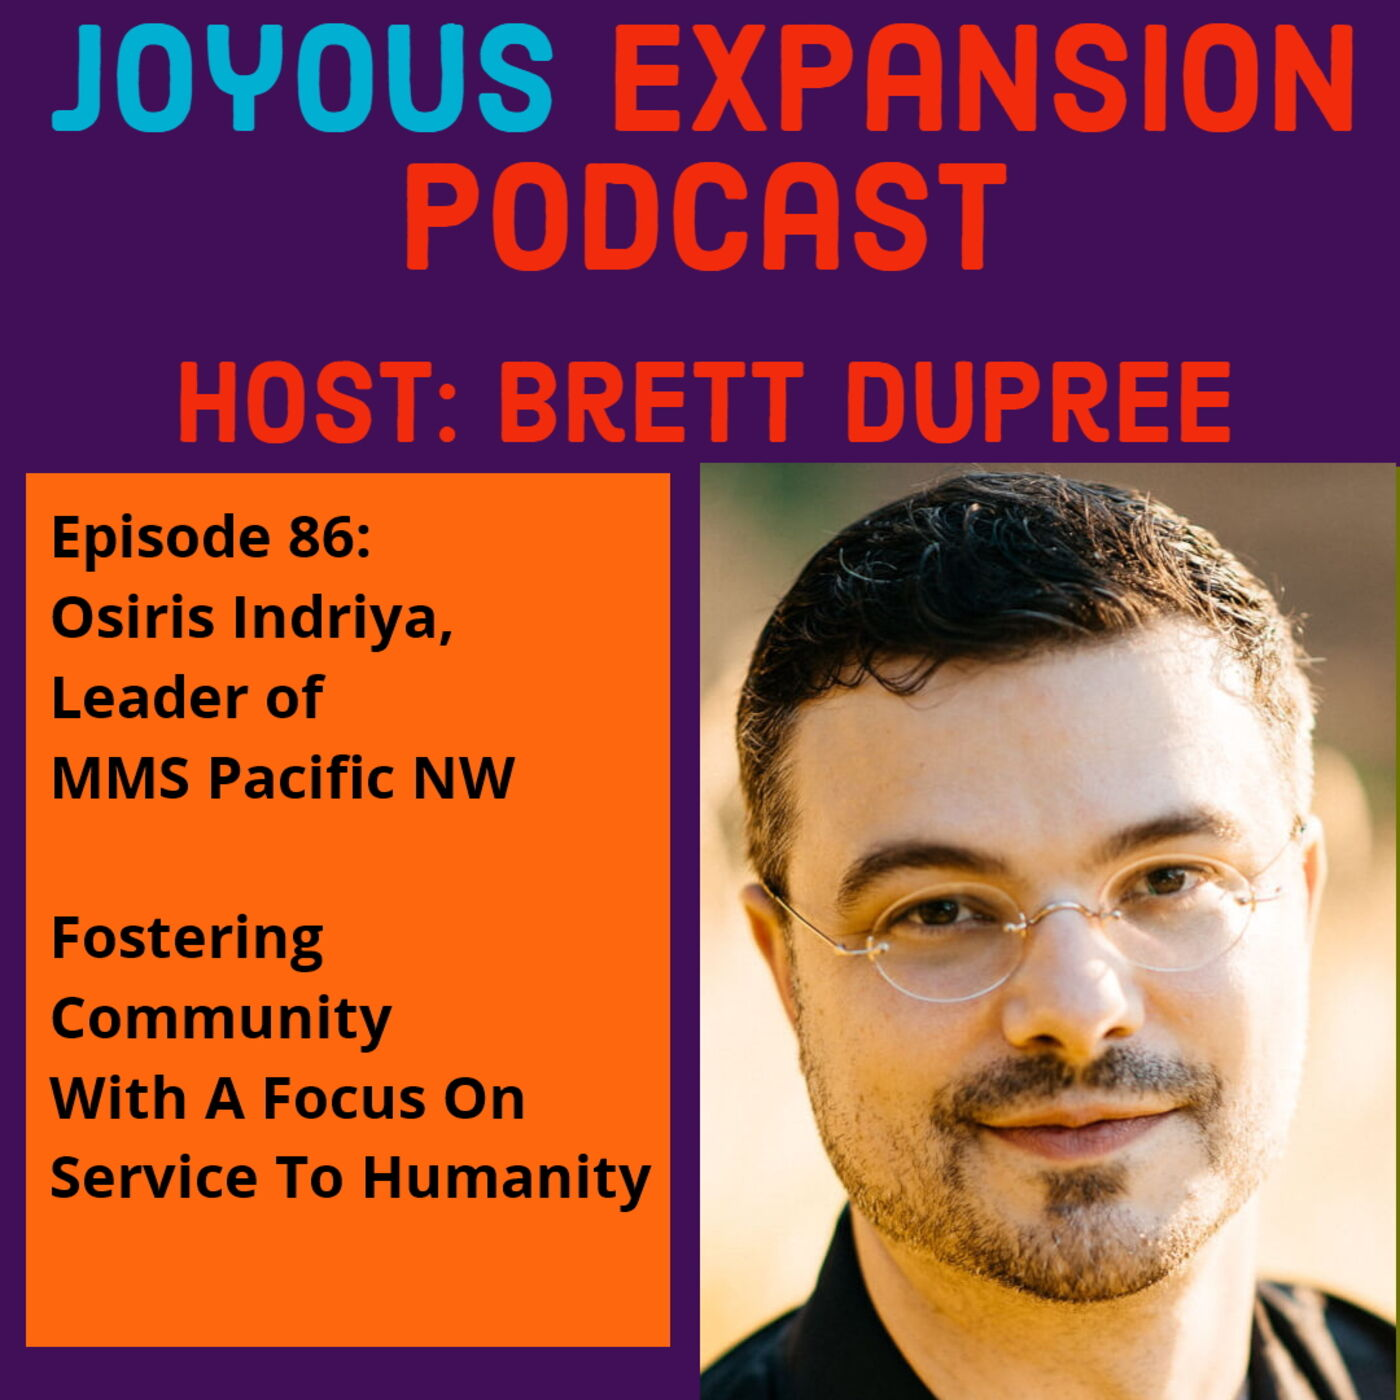 Joyous Expansion #86 - Osiris Indriya, Fostering Community With A Focus On Service To Humanity